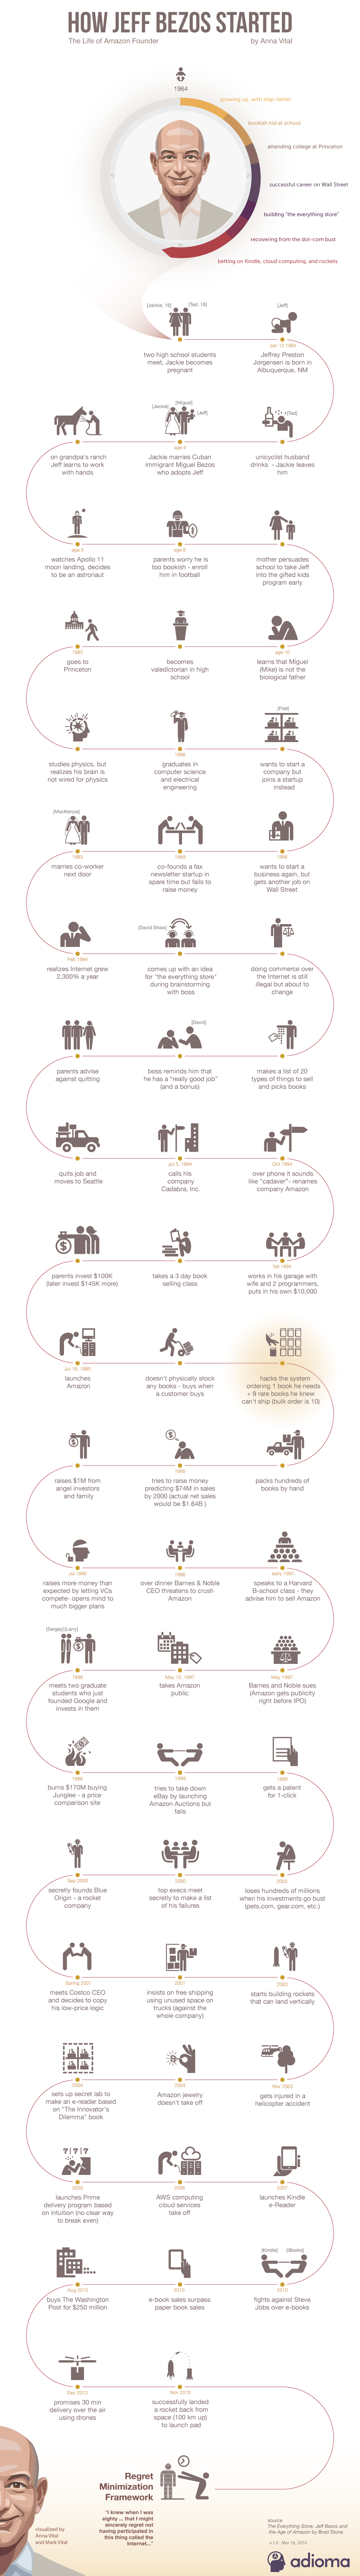 how-jeff-bezos-started-infographic.png